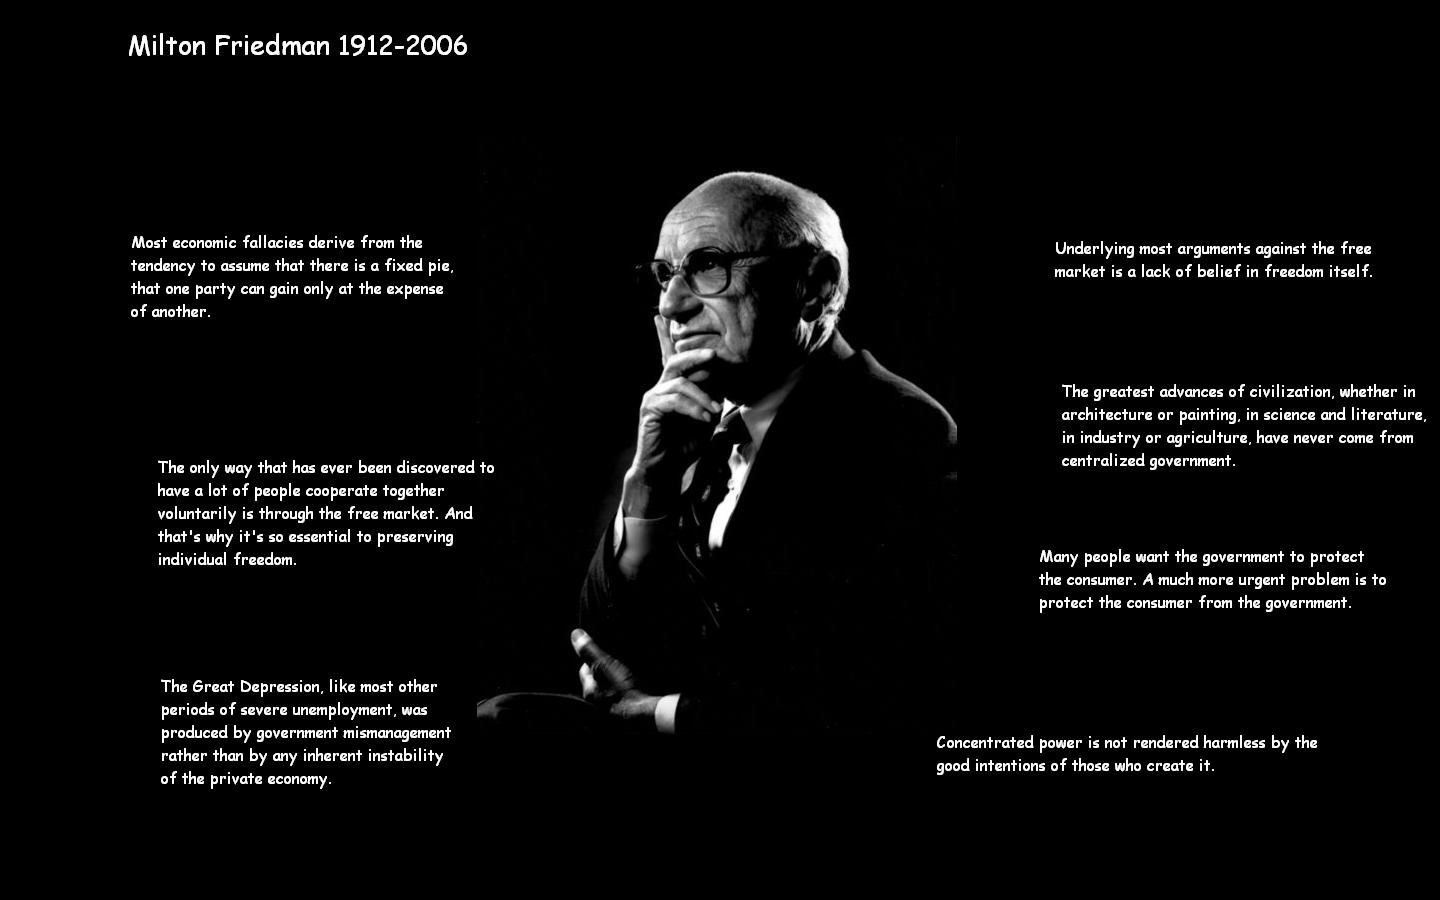 Milton Friedman wallpaper by toolshed333 1440x900